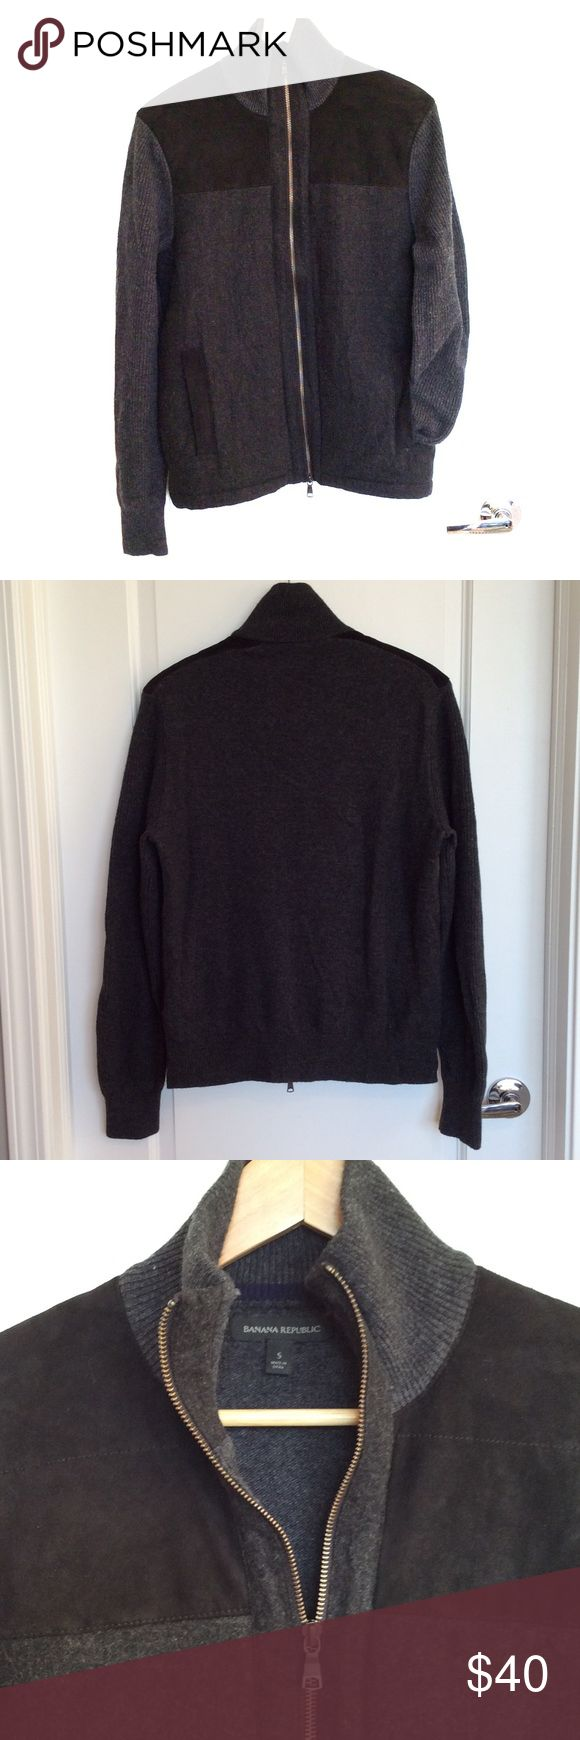 Banana Republic wool jacket, lamb leather trim Banana Republic gray men's wool jacket with black lamb leather trim. Size small. Excellent condition. No piling. Non-smoking household. Banana Republic Jackets & Coats Lightweight & Shirt Jackets